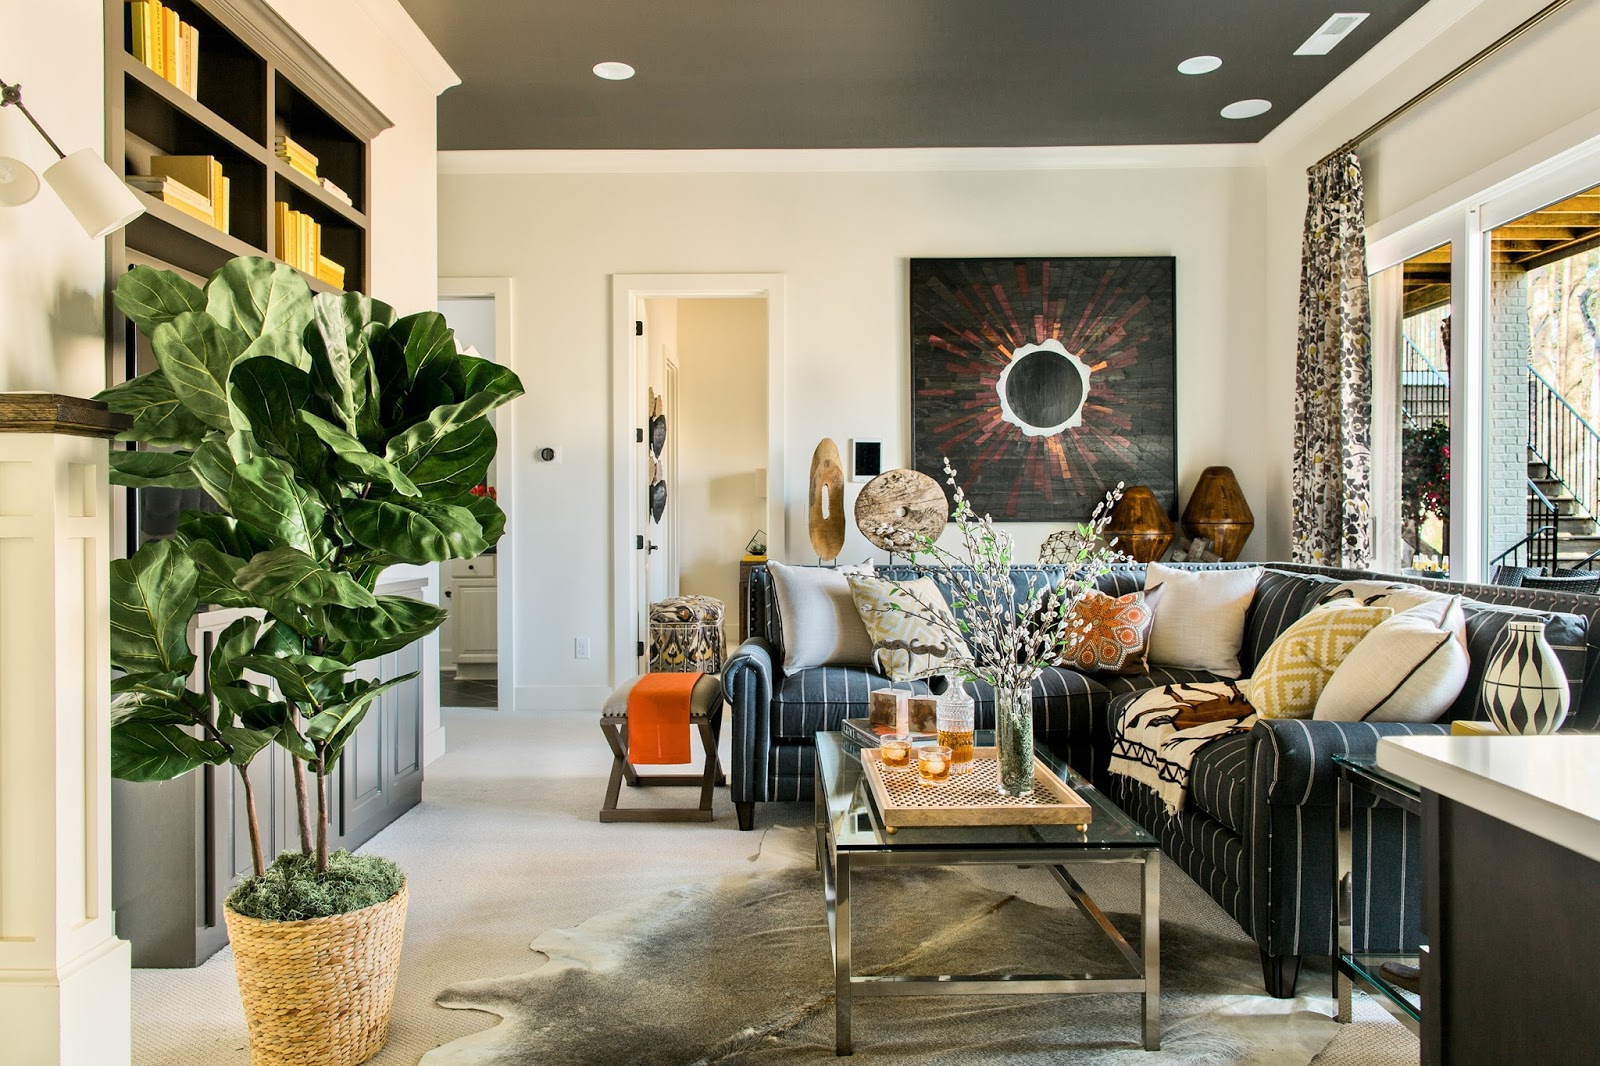 hines sight blog raleigh nc is home to new hgtv smart home. Black Bedroom Furniture Sets. Home Design Ideas